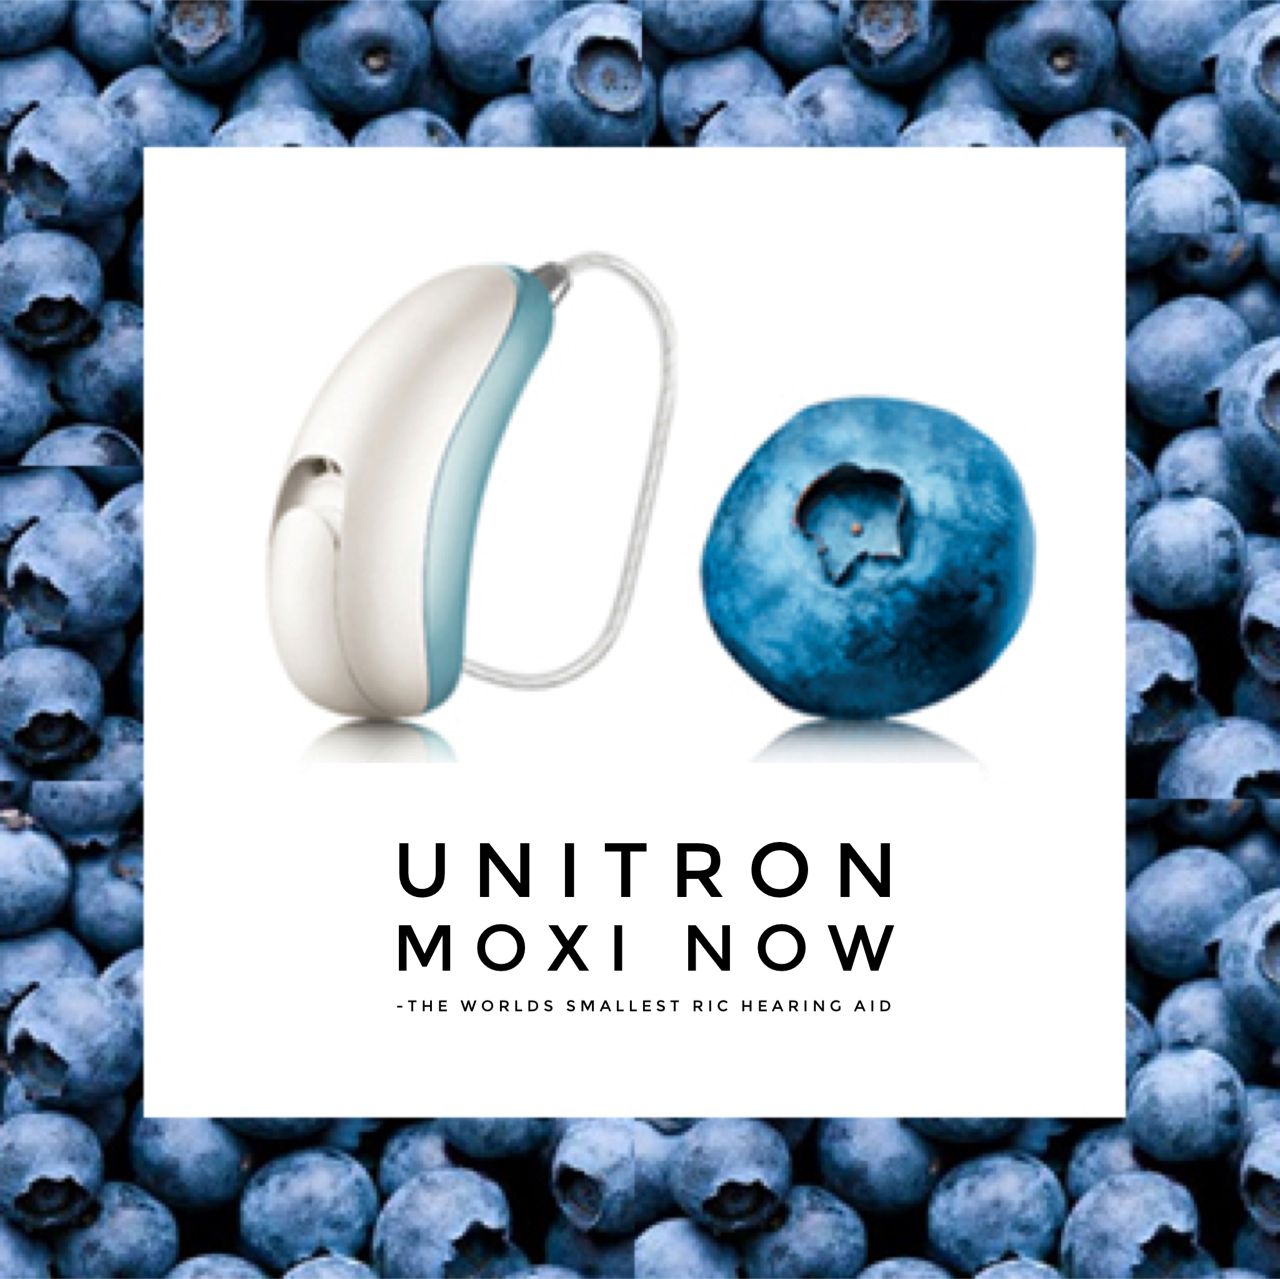 Unitron Moxi Now - Worlds Smallest RIC